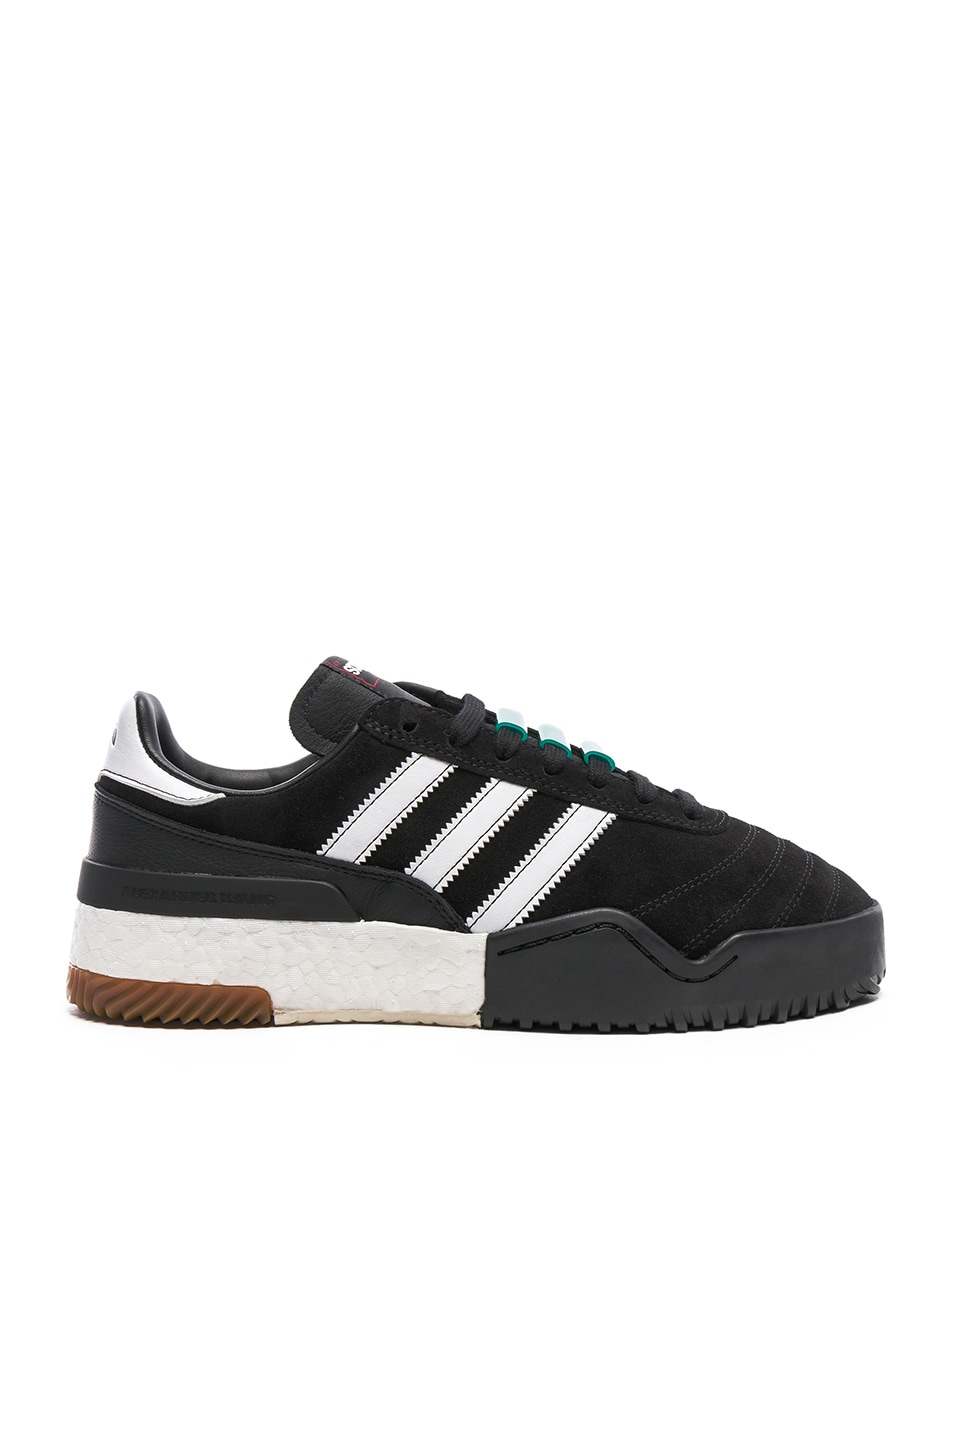 newest 92988 6f1e2 Image 1 of adidas by Alexander Wang Basketball Soccer Sneakers in Core Black,  White,